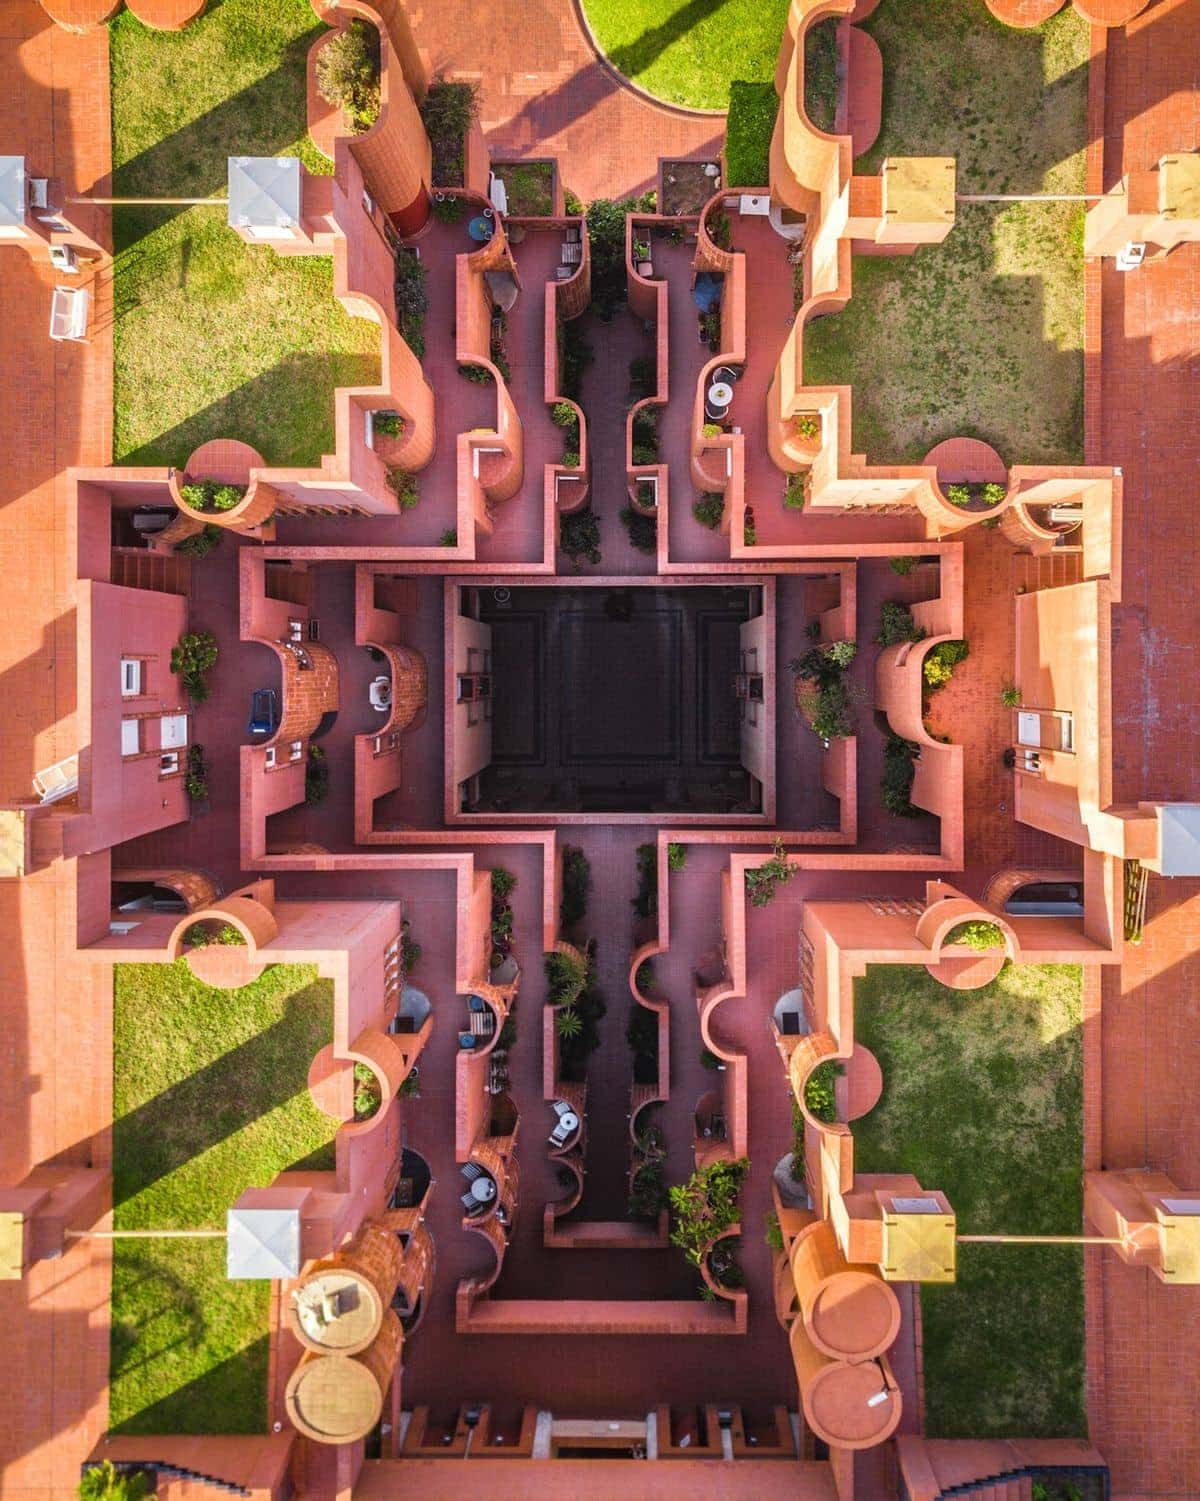 A bird's eye view of Barcelona by Márton Mogyorósy | Photography | What's going on here anyway?